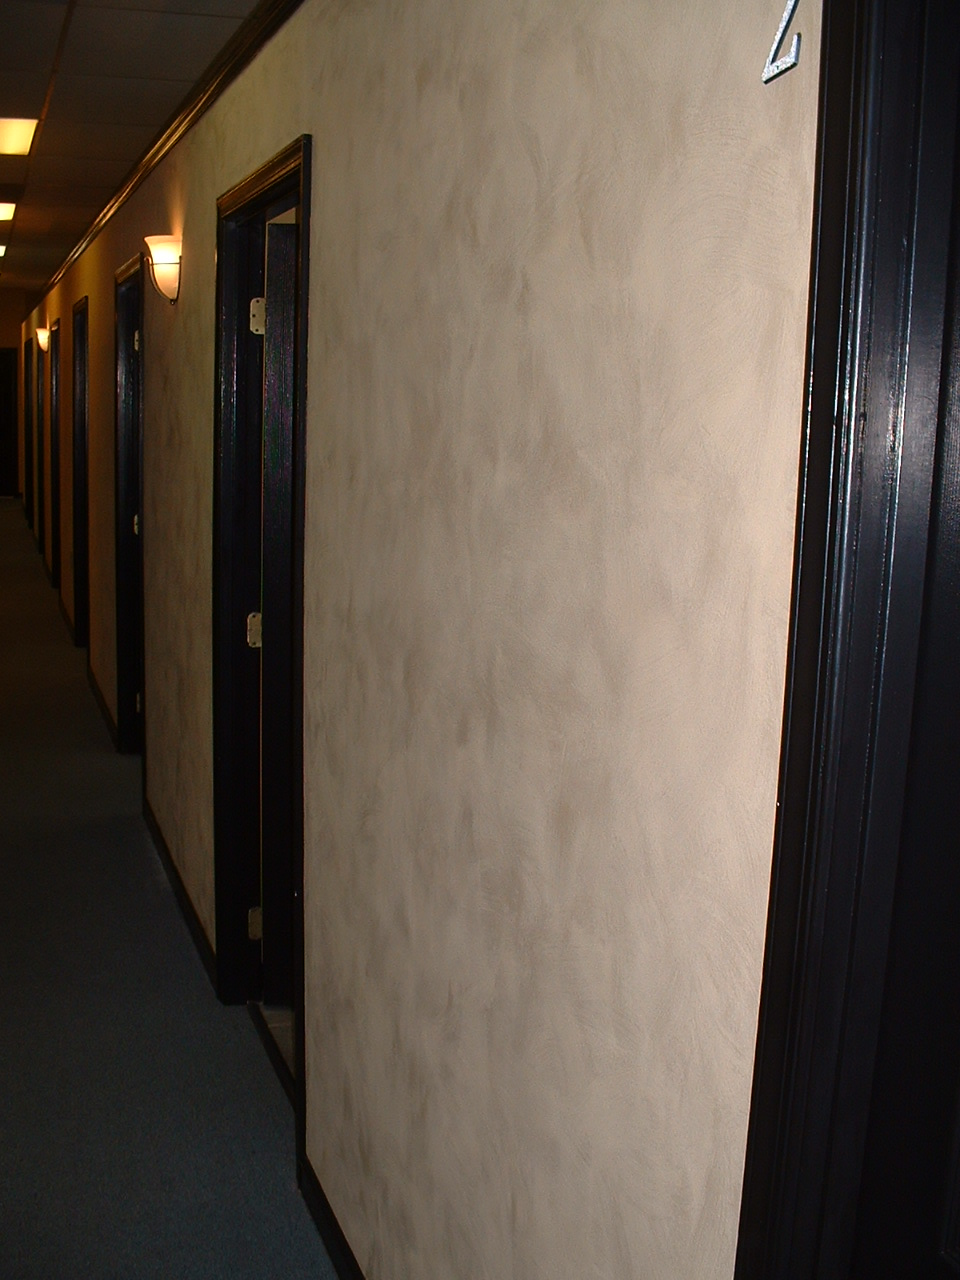 Paint & Drywall Division